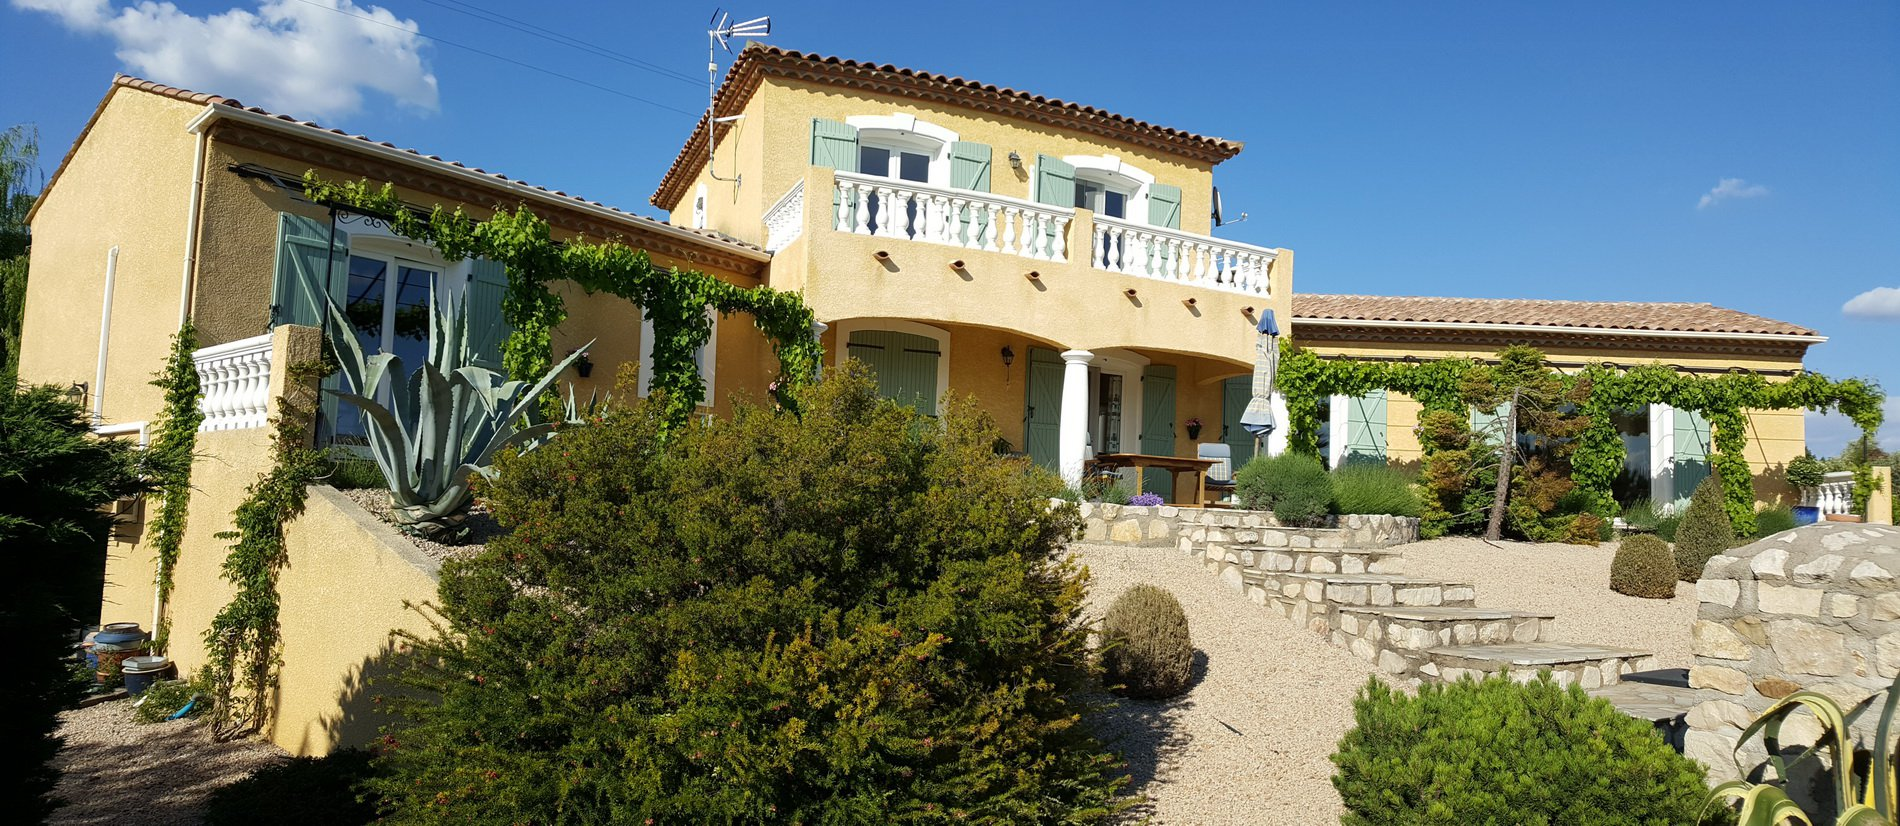 Villa with big garden, double garage and pool and views